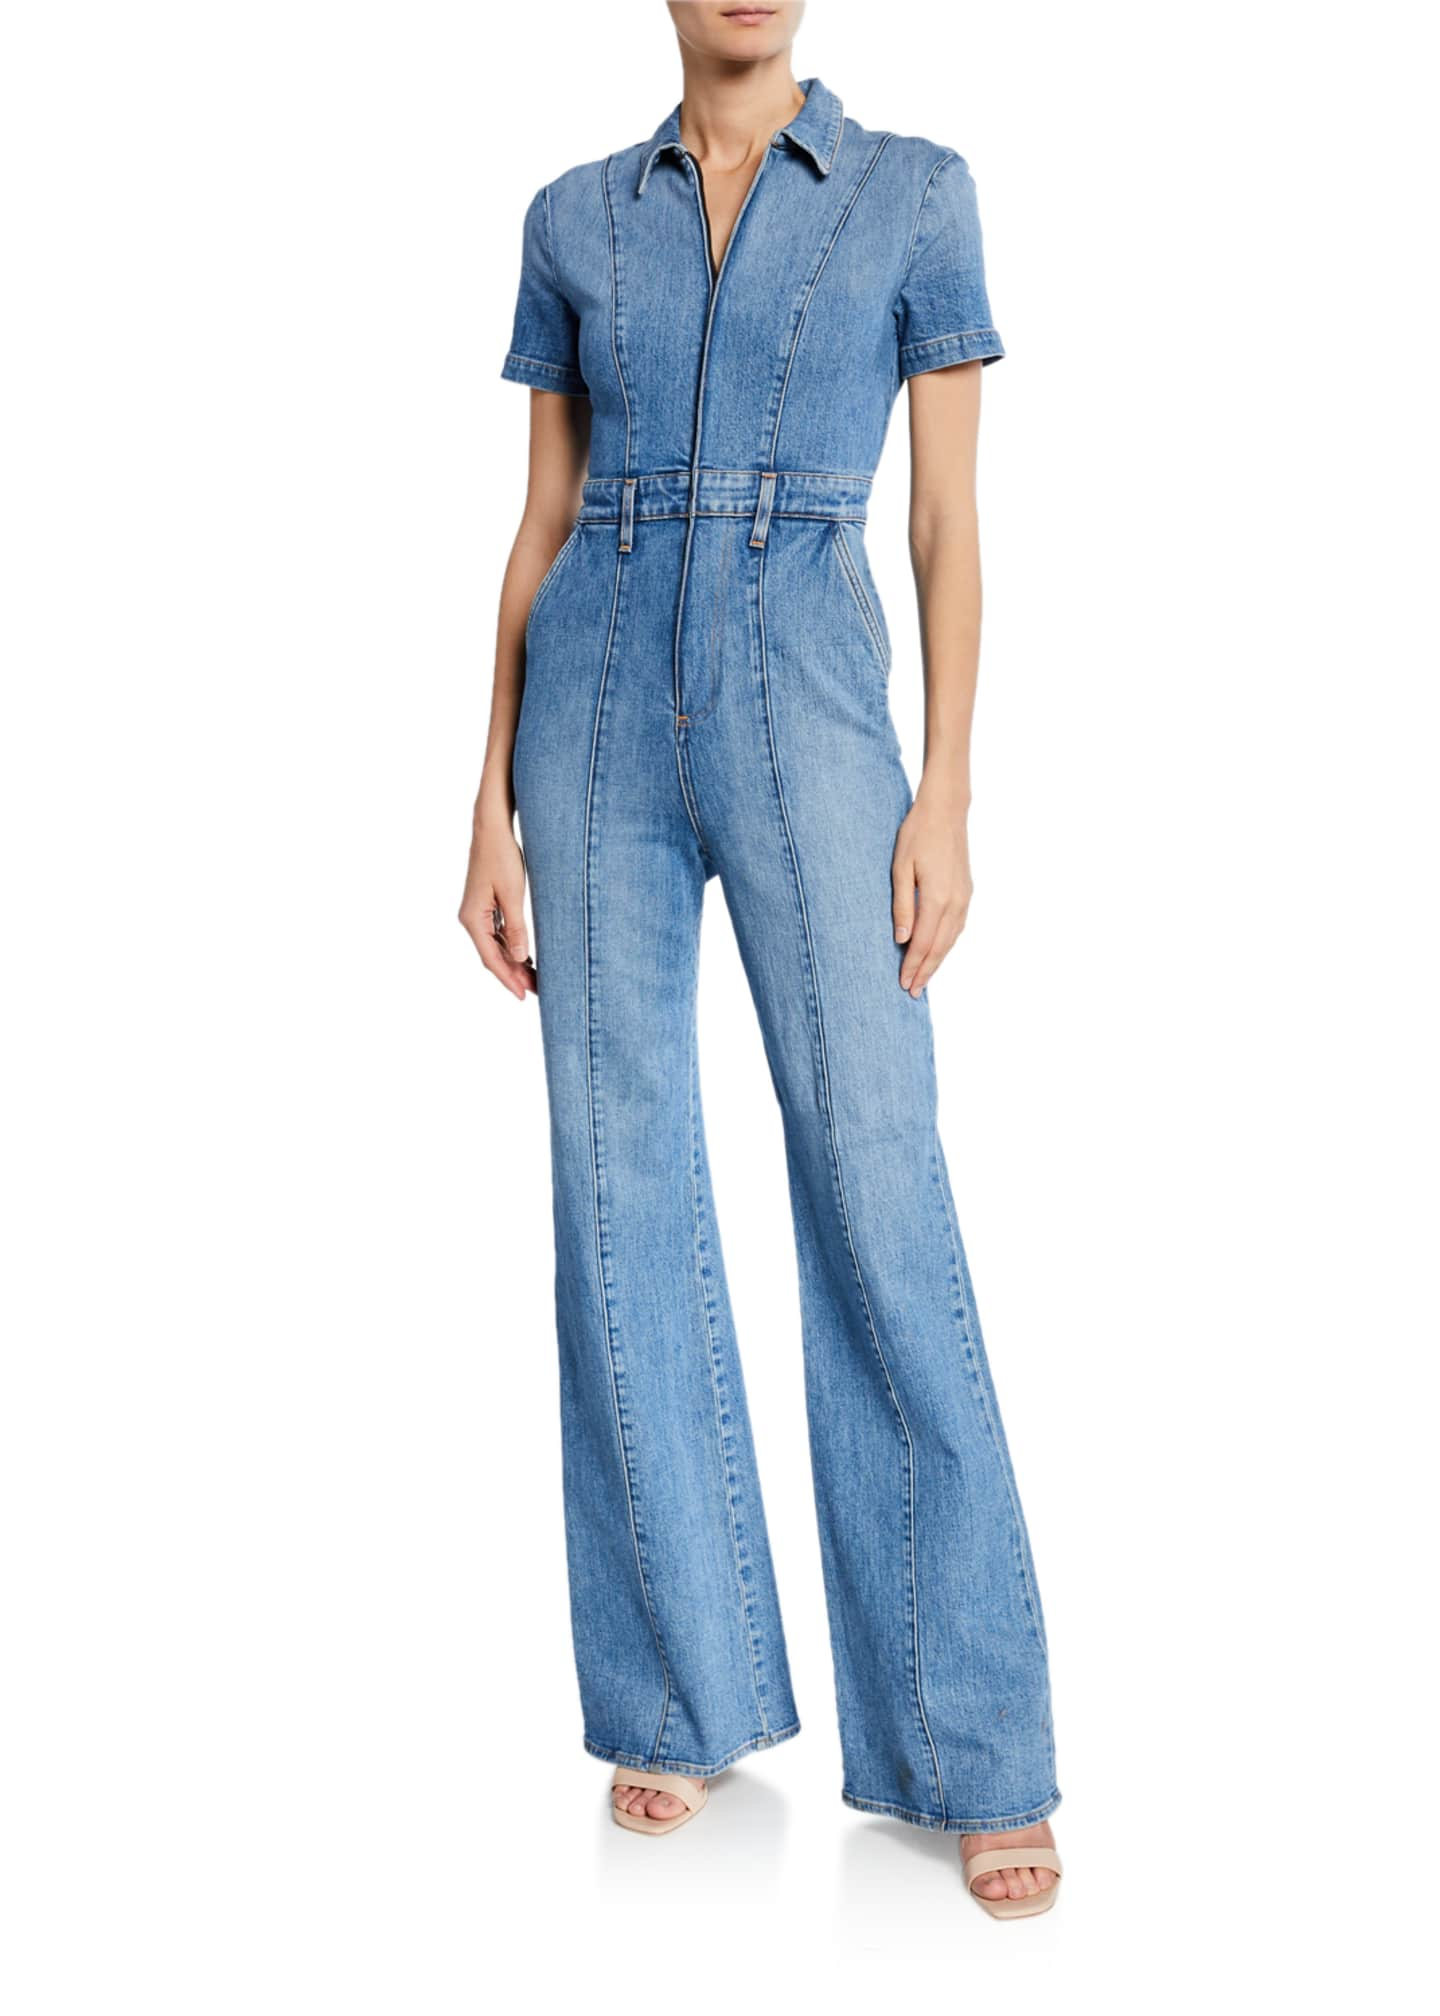 ALICE + OLIVIA JEANS Gorgeous Wide-Leg Fitted Denim